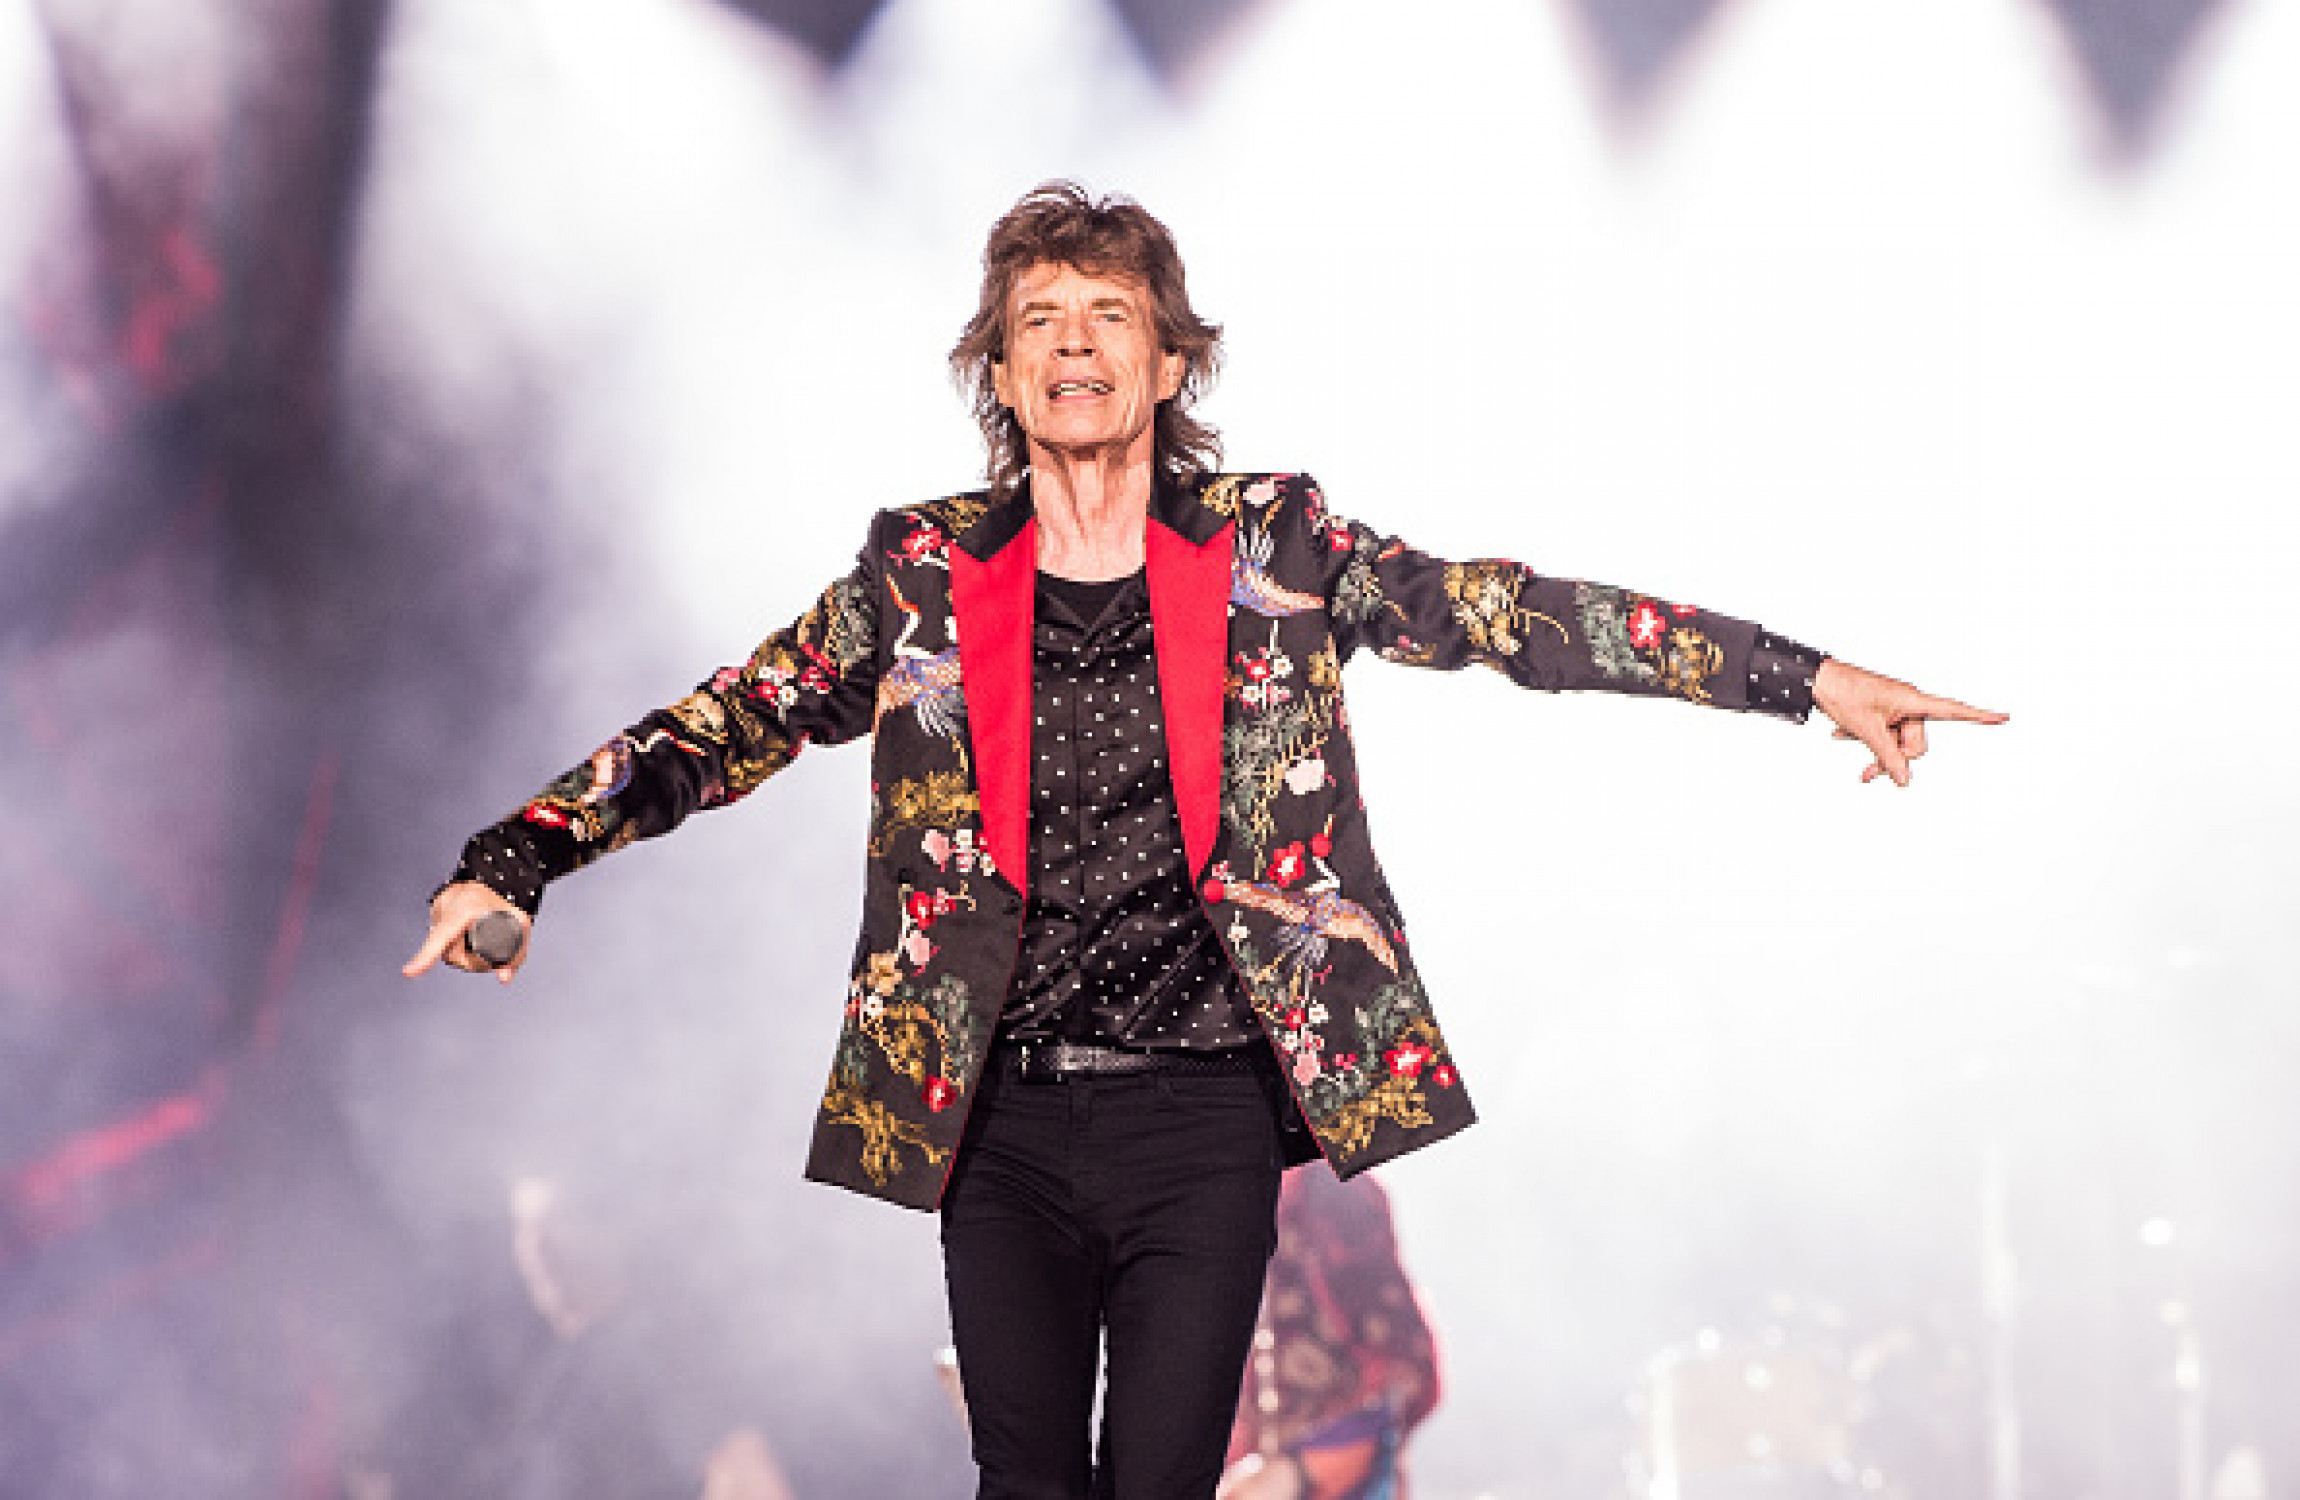 It's official! The Rolling Stones are coming to Dublin